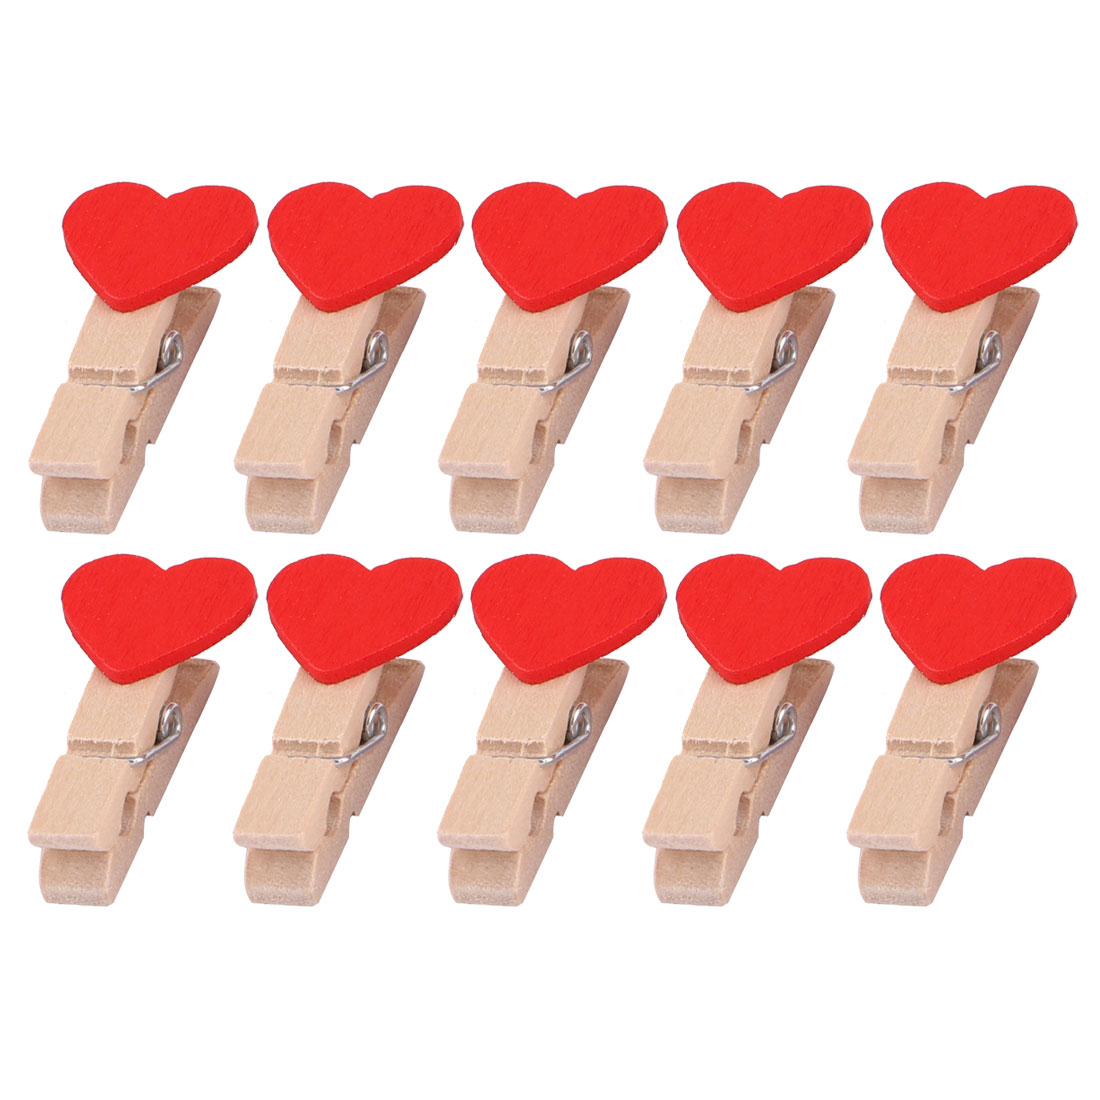 Family Wooden Heart Shape DIY Crafts Card Photo Ornament Peg Clip Red 10pcs